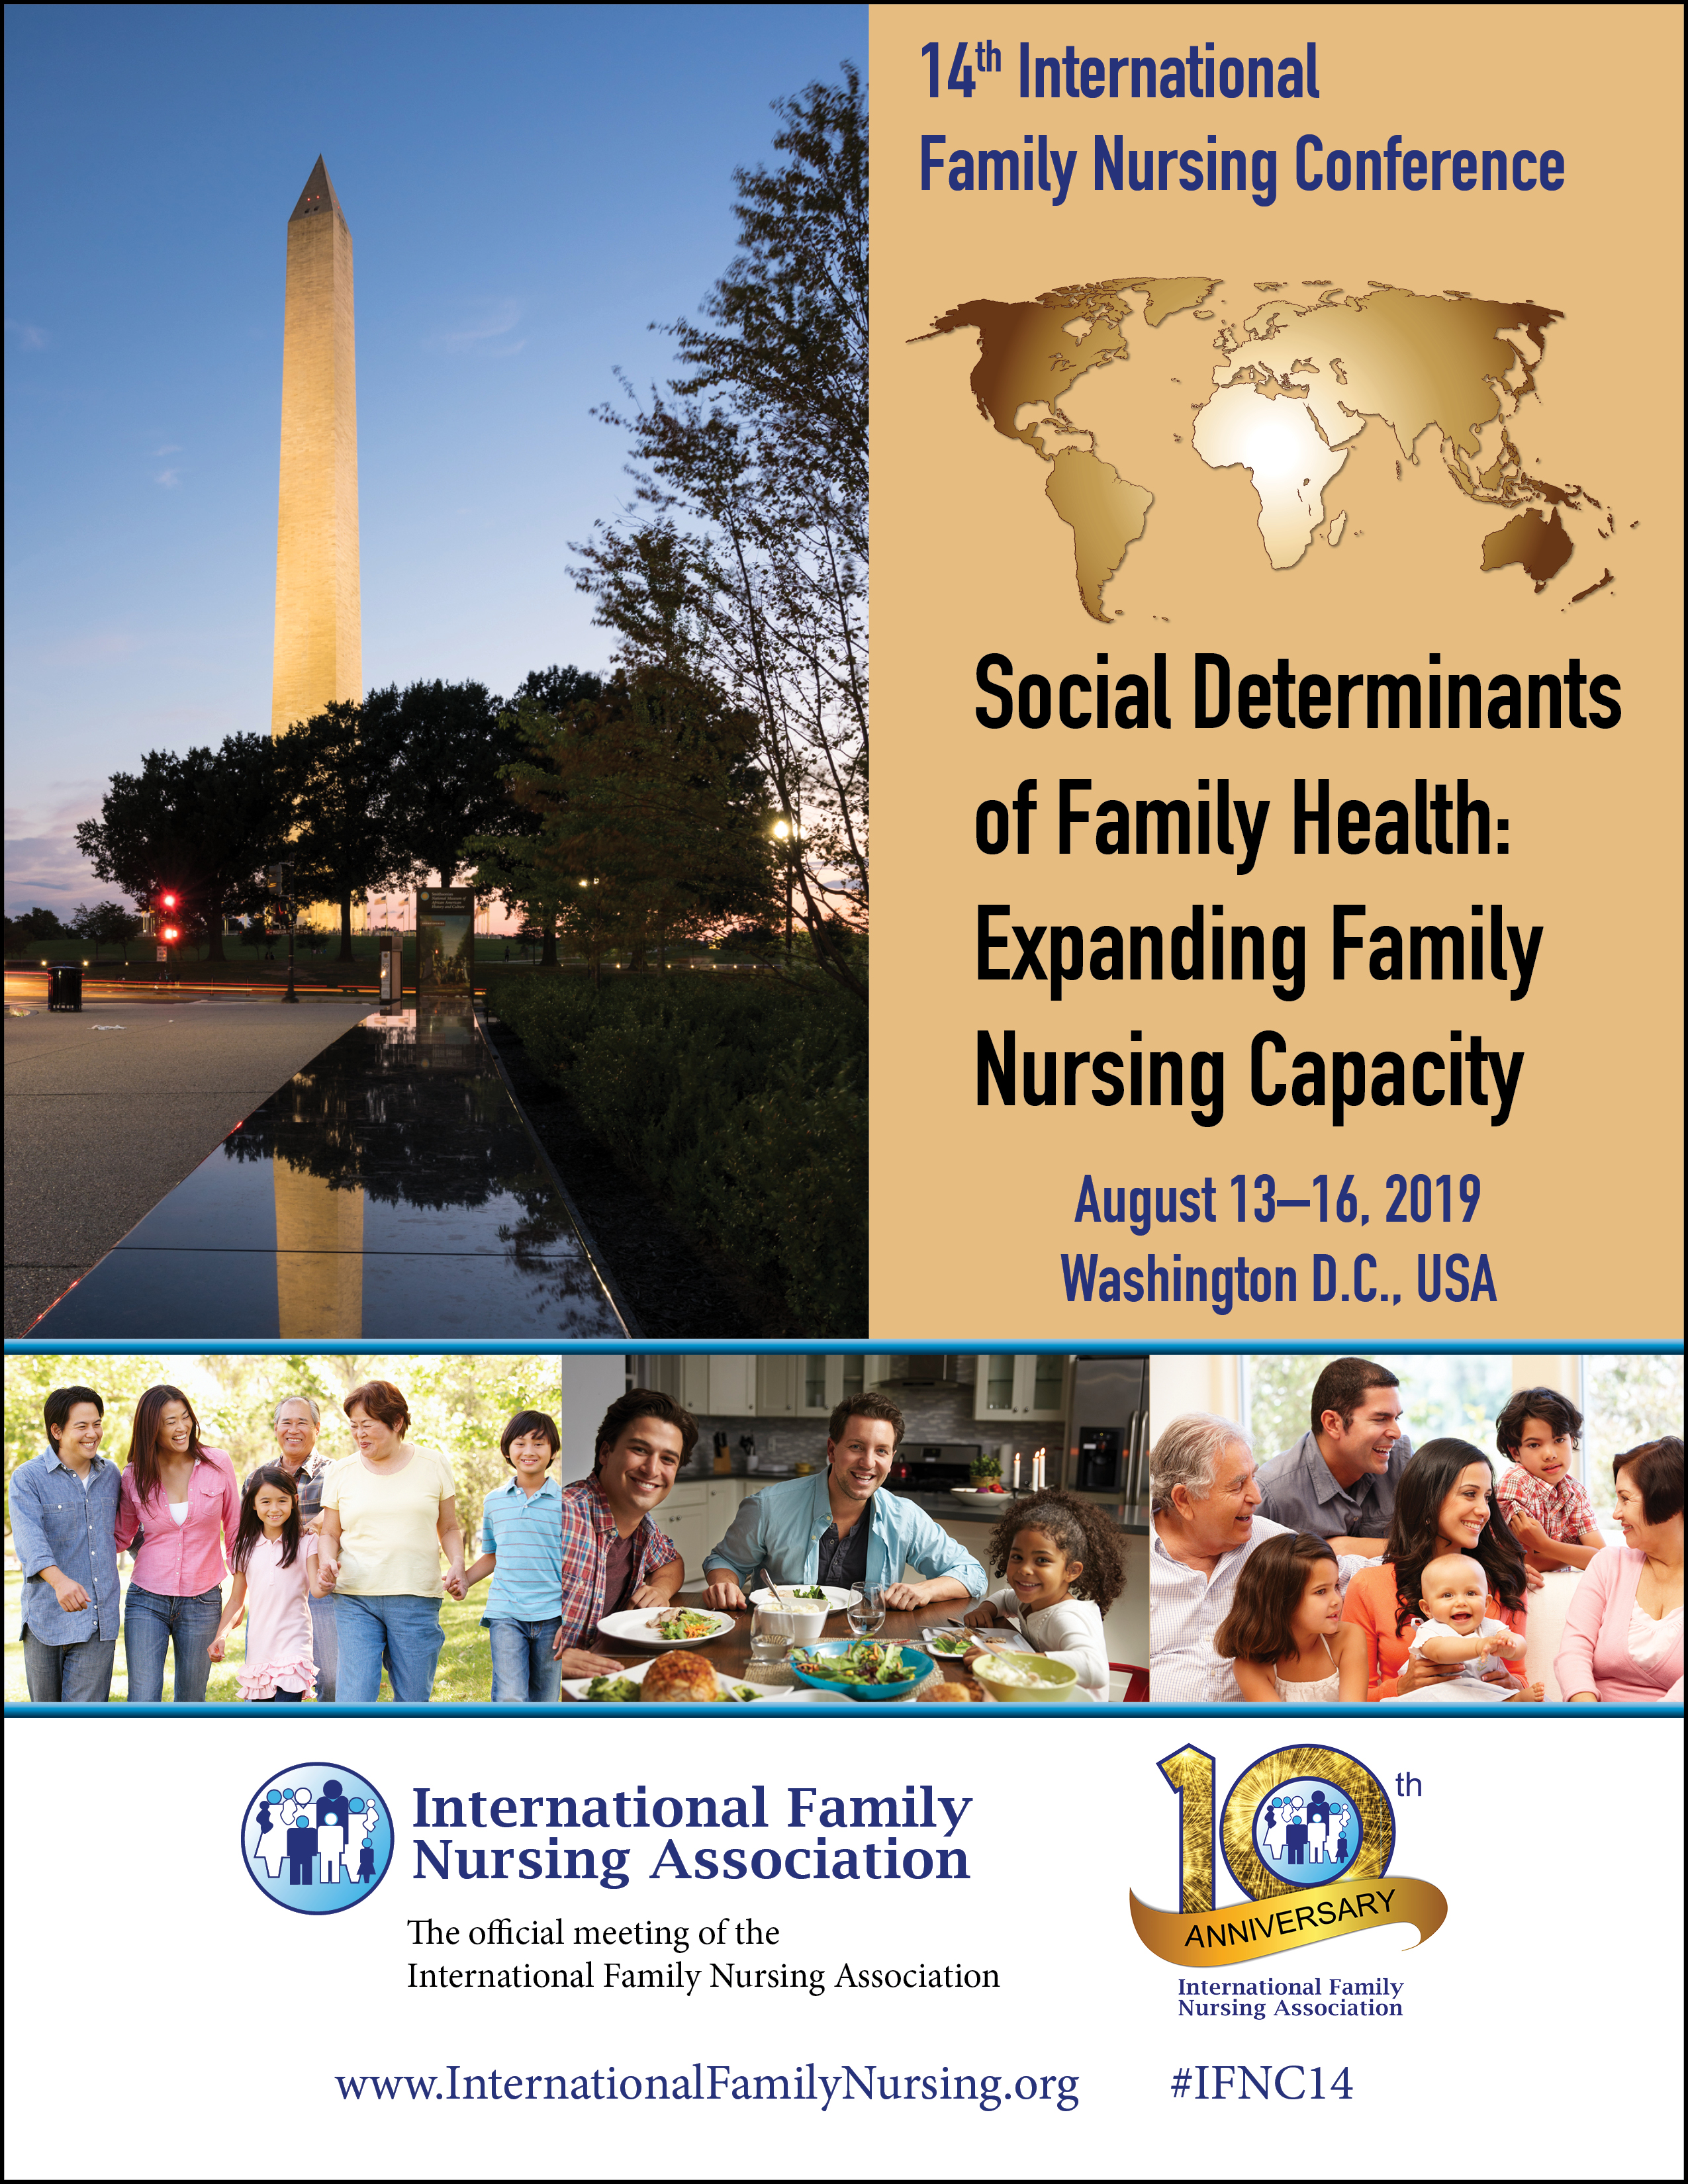 IFNC14 - International Family Nursing Association